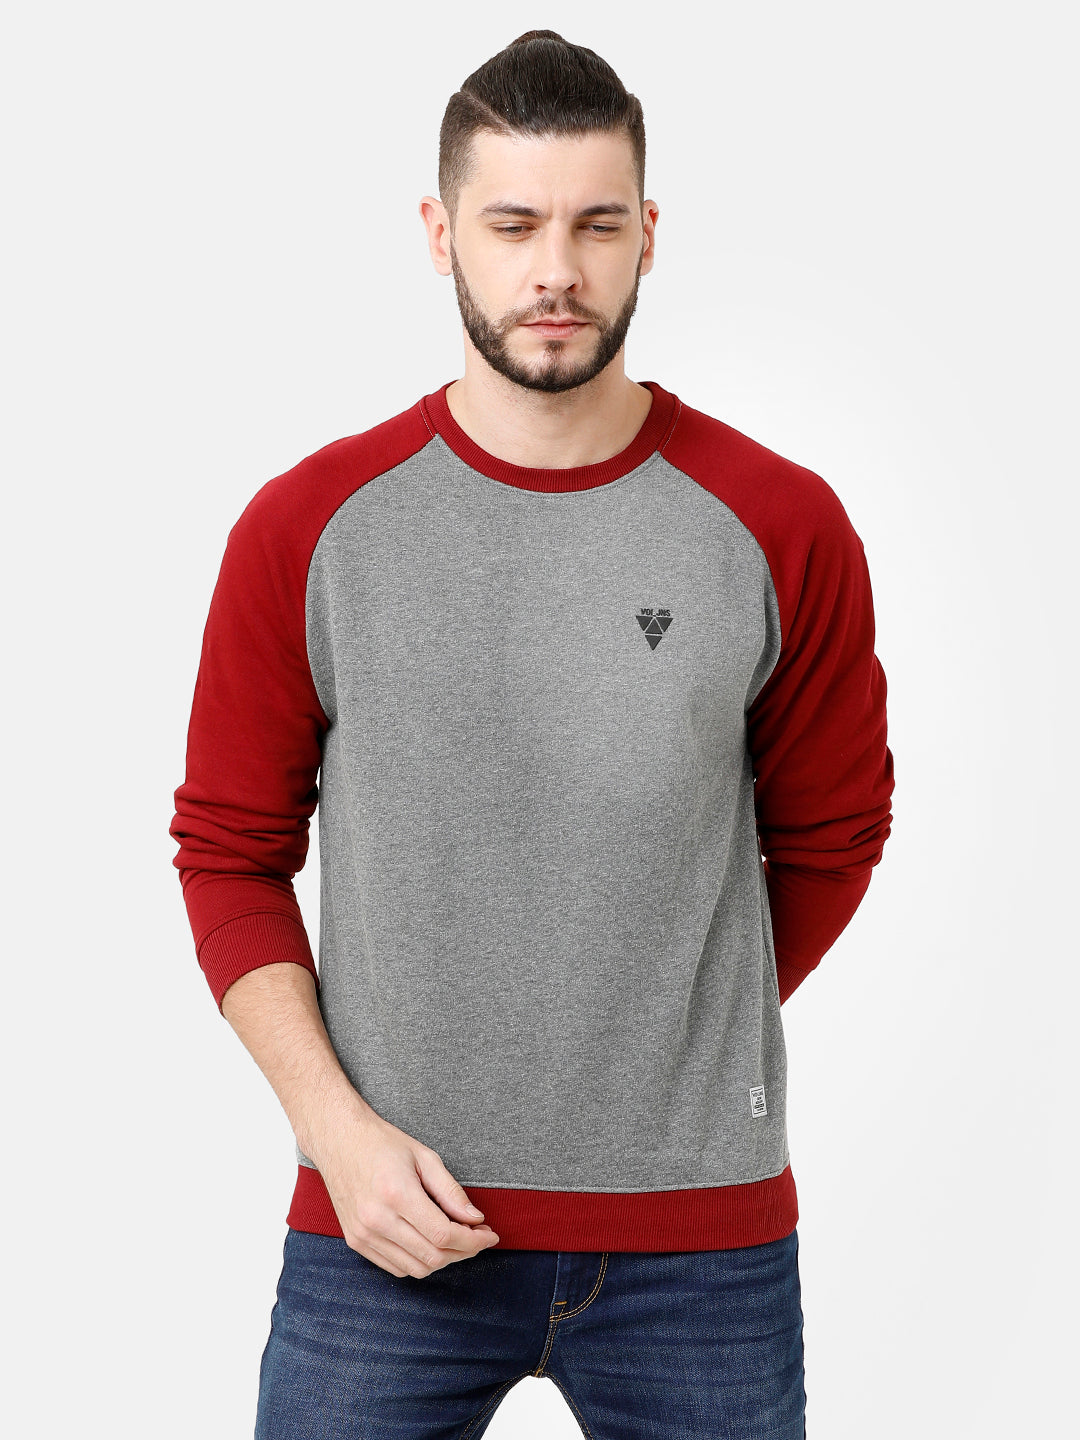 Grey and Red Sweatshirt